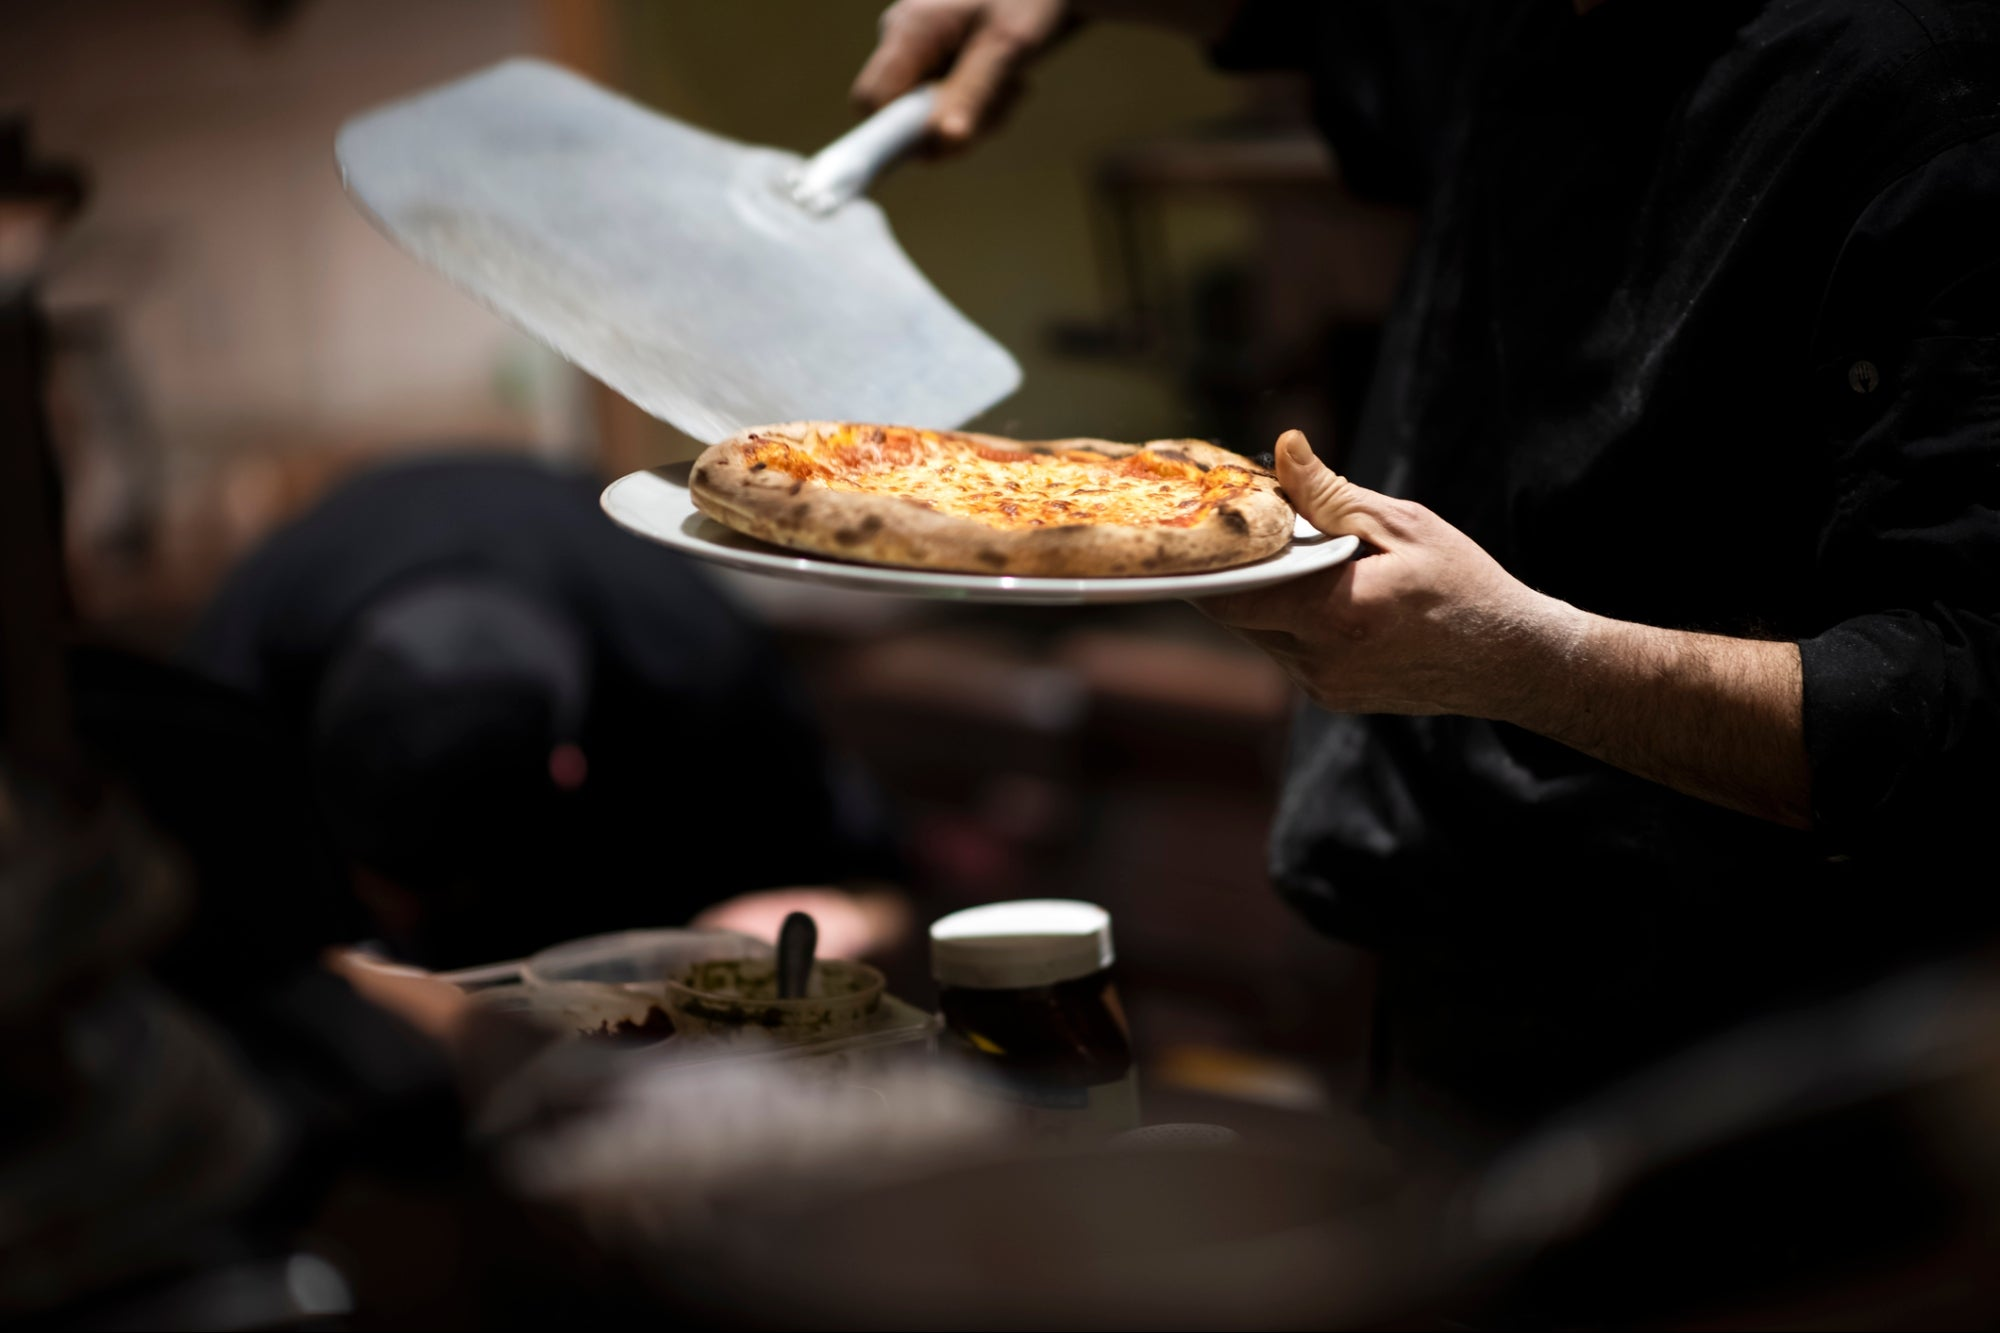 Why Your Prices Should Be More Like the Local Pizzeria